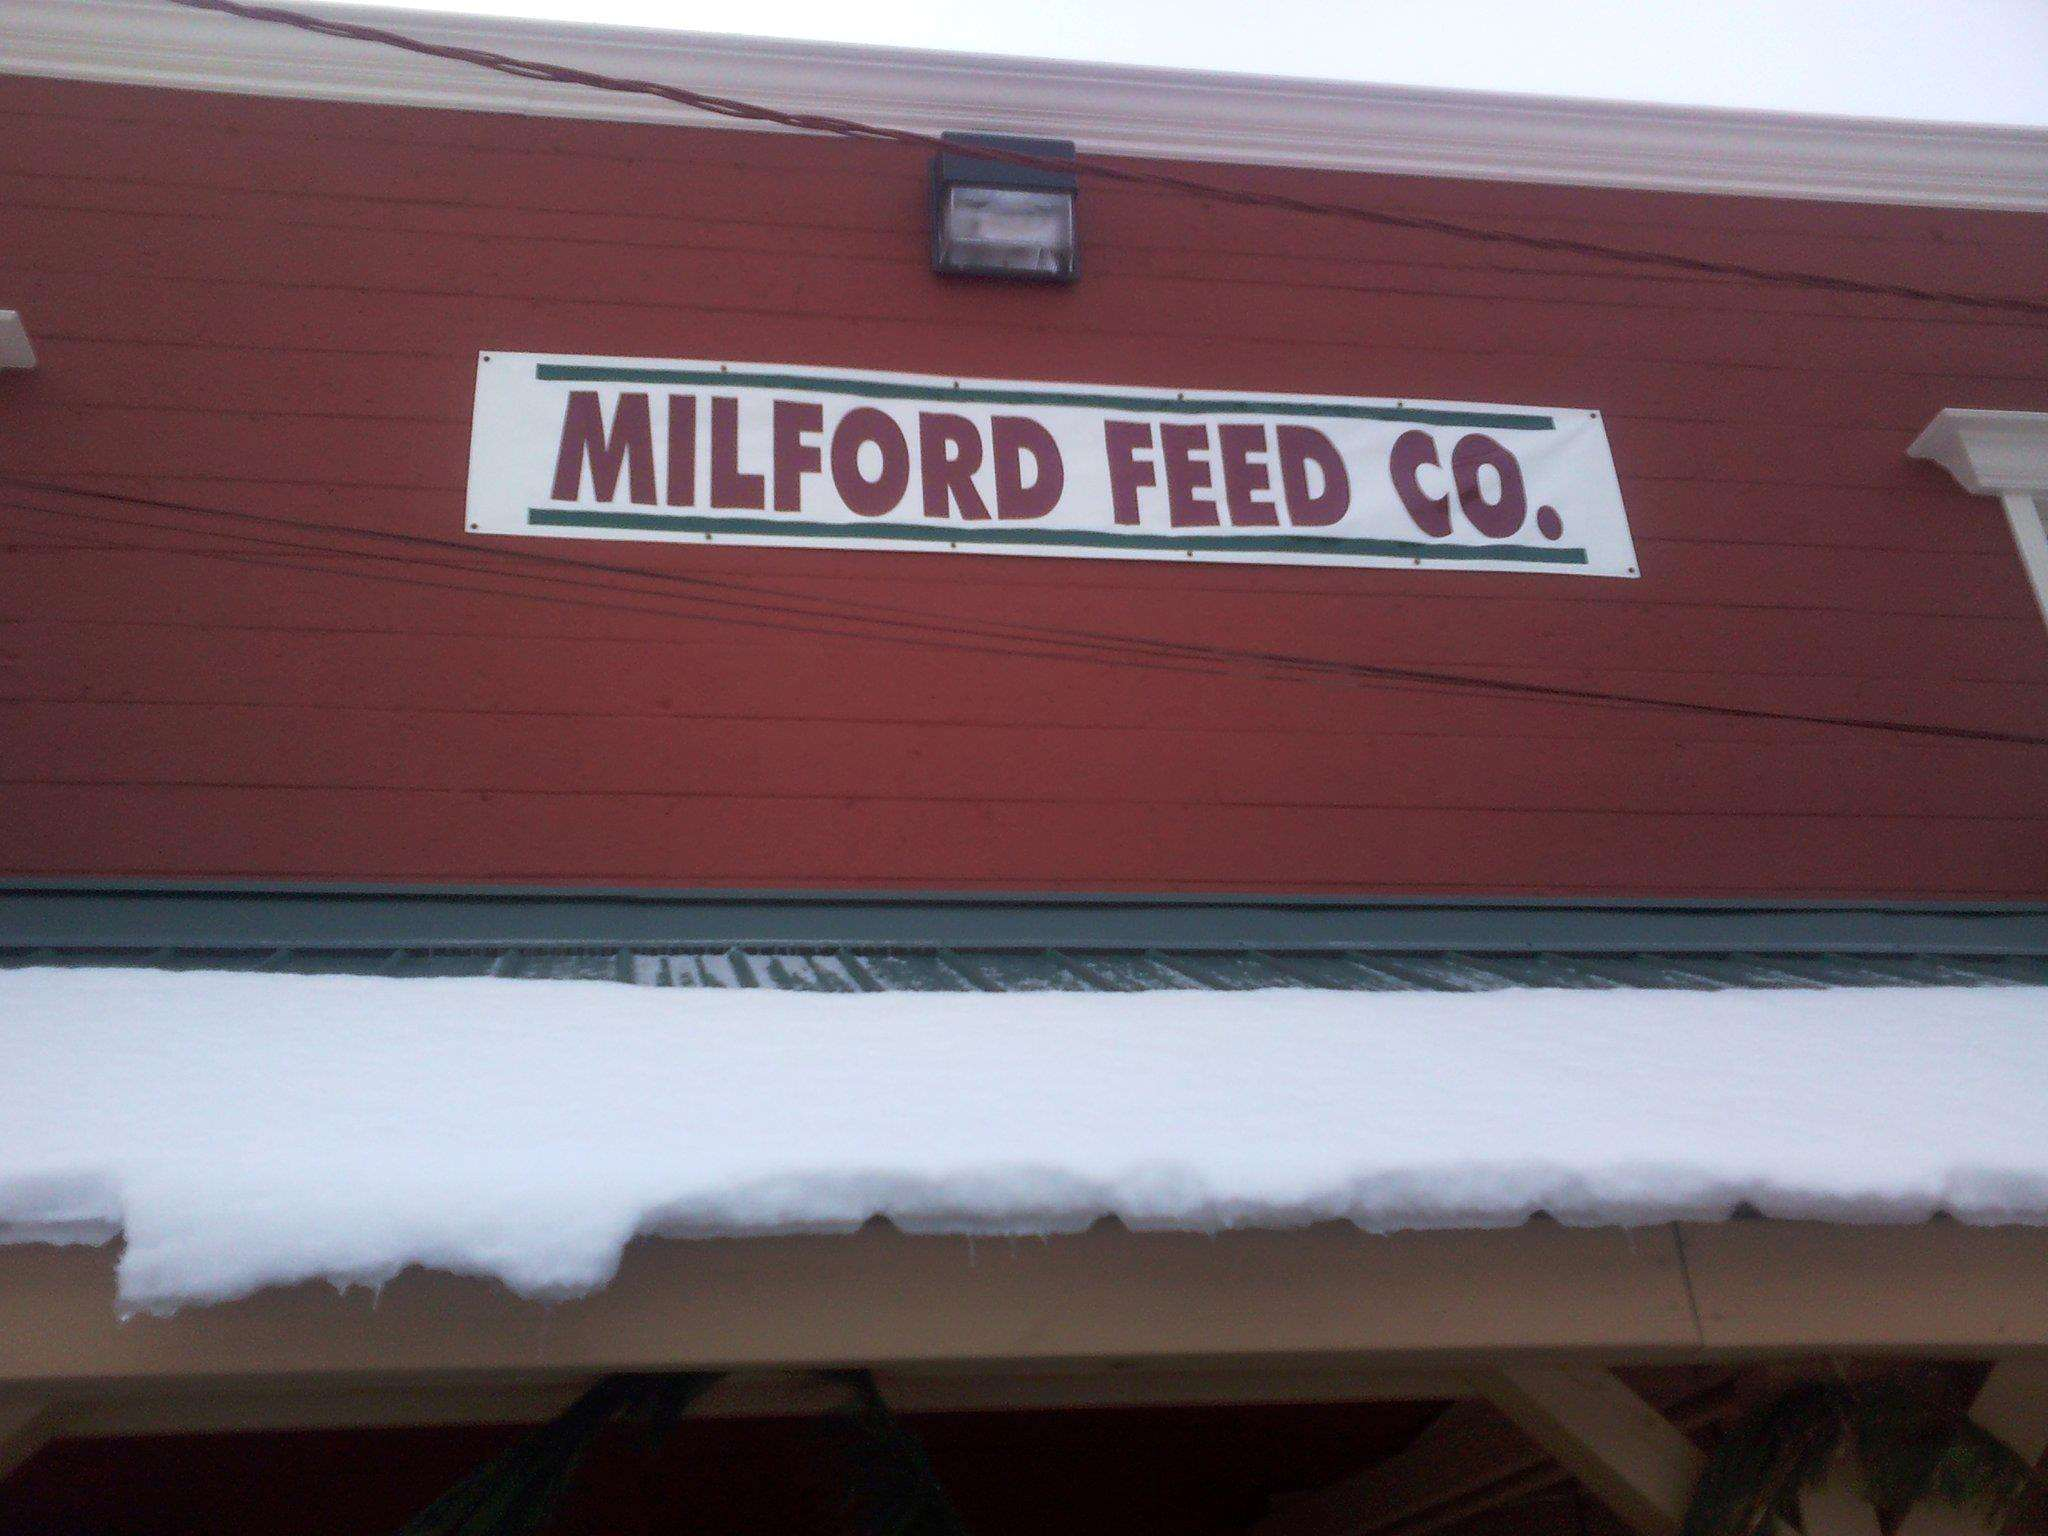 Milford Feed Co.